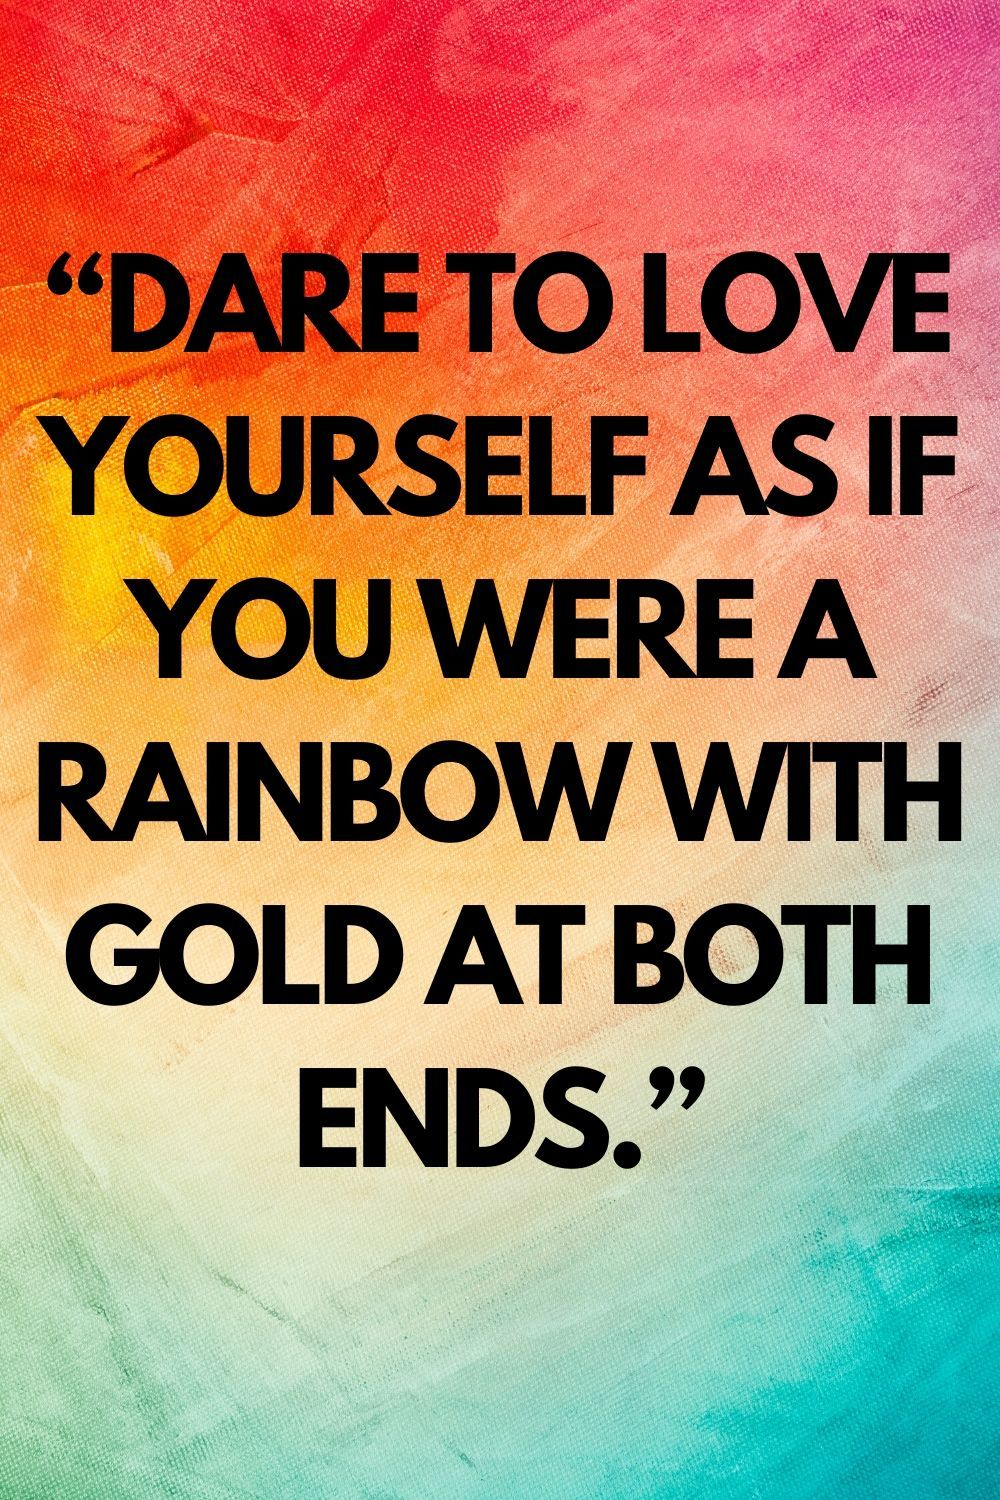 60 Rainbow Quotes And Sayings That Will Brighten Your Day Rainbow Quote Life Quotes To Live By My Life Quotes